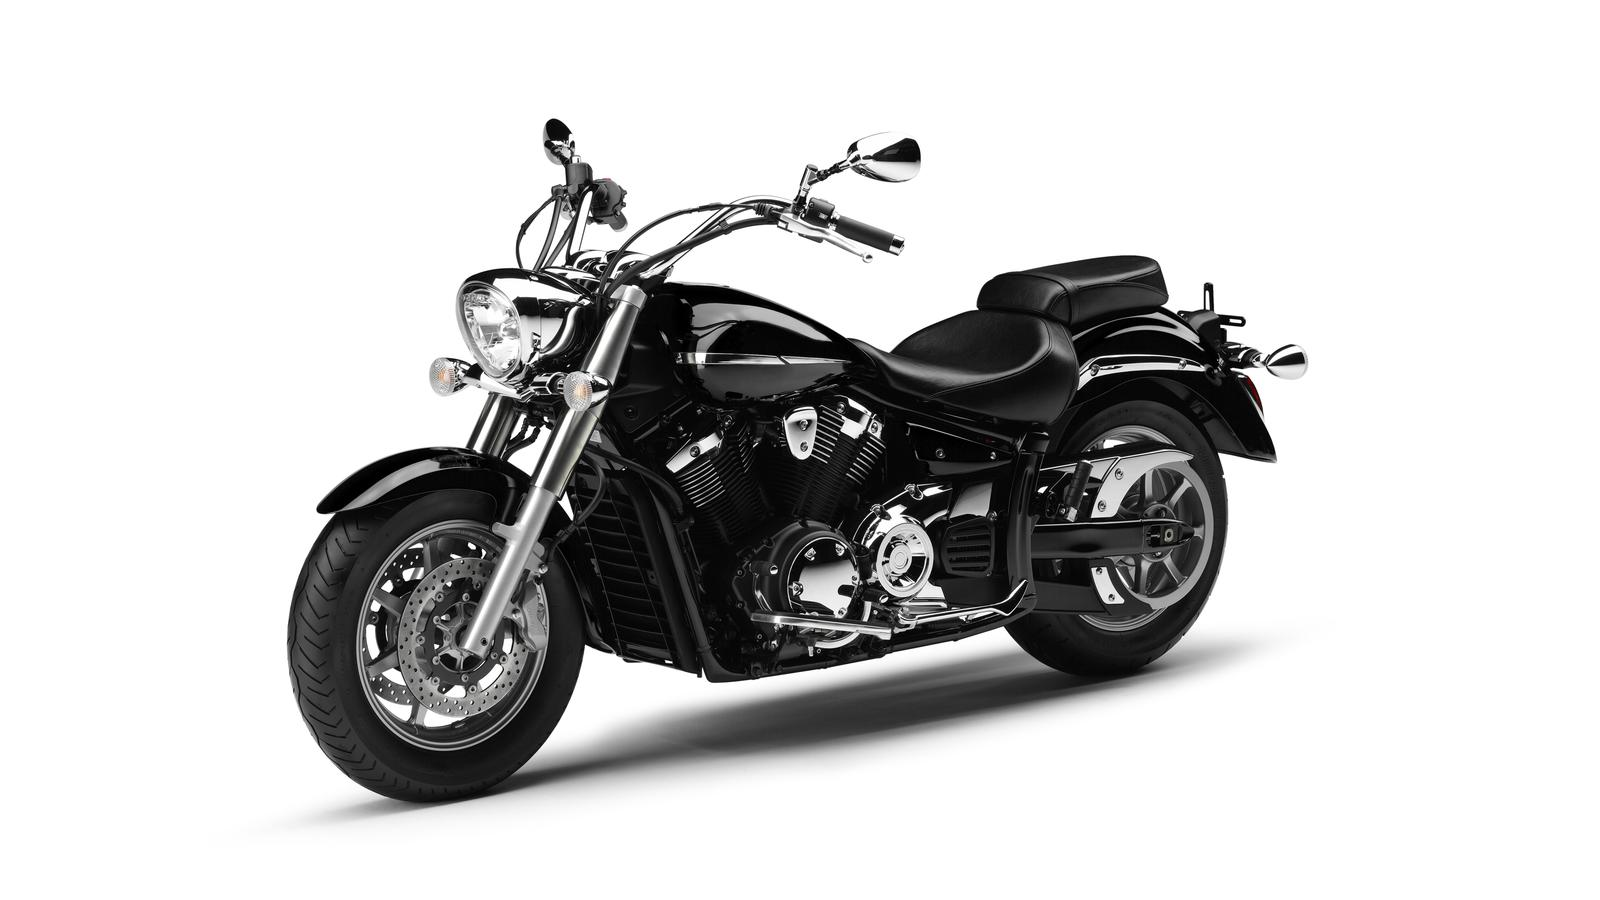 YAMAHA XVS 1300 A Midnight Star  2011 photo 4